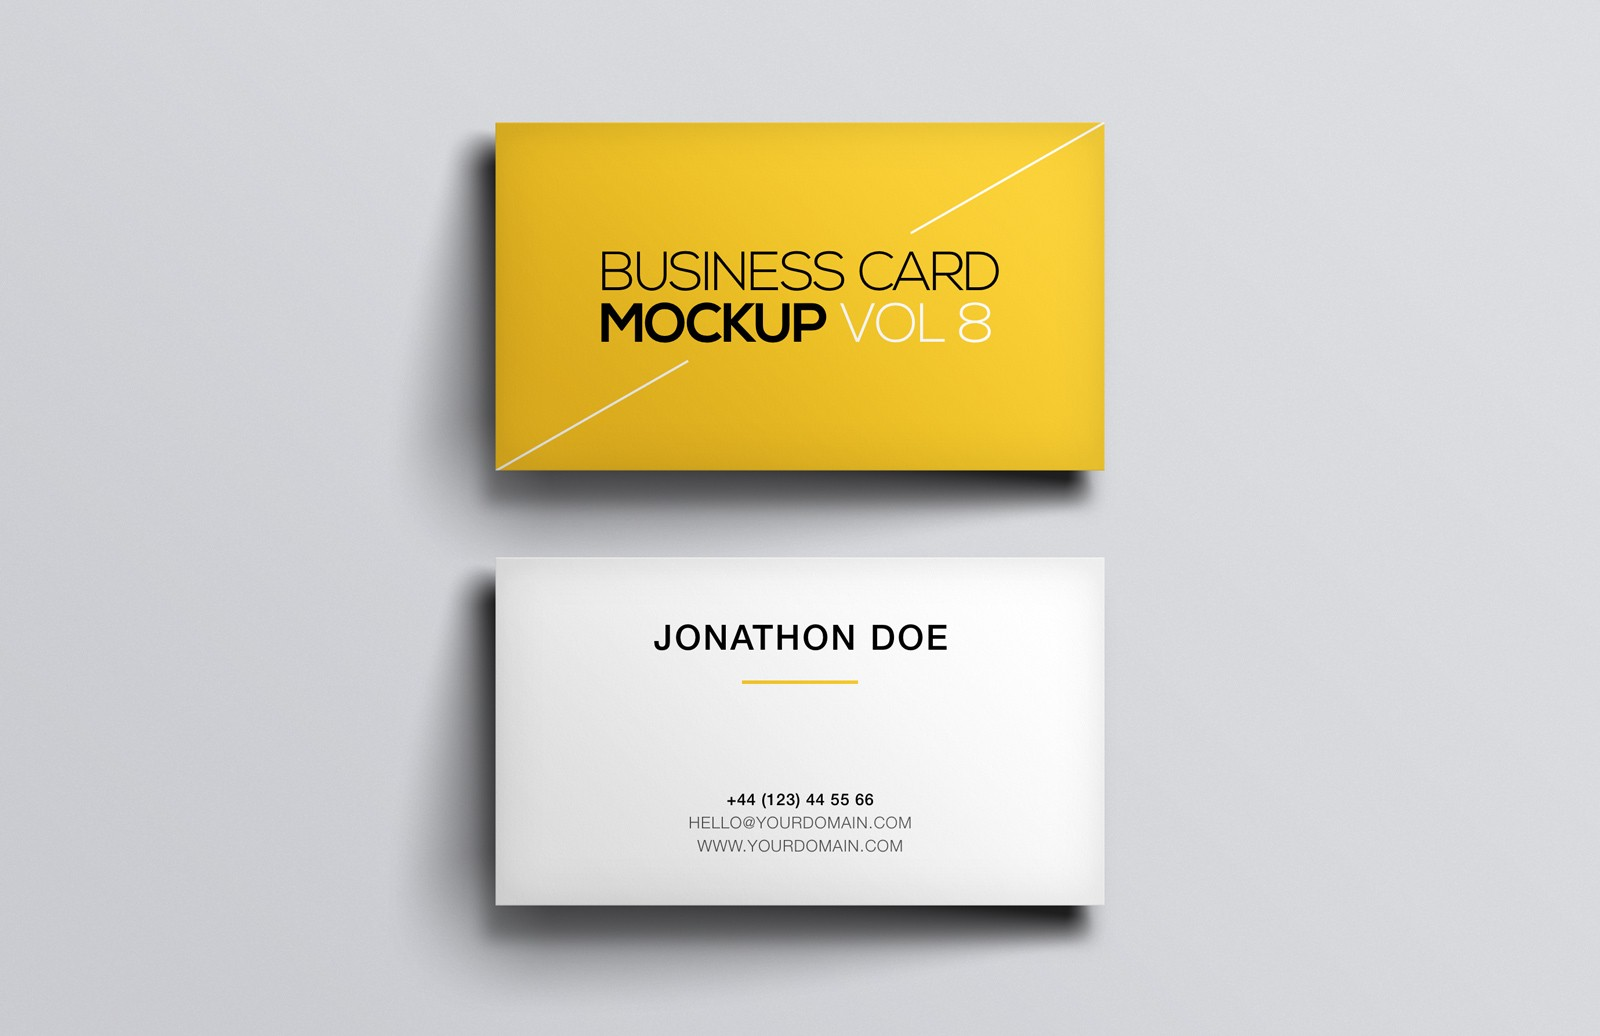 Business Card Mockup Vol 8